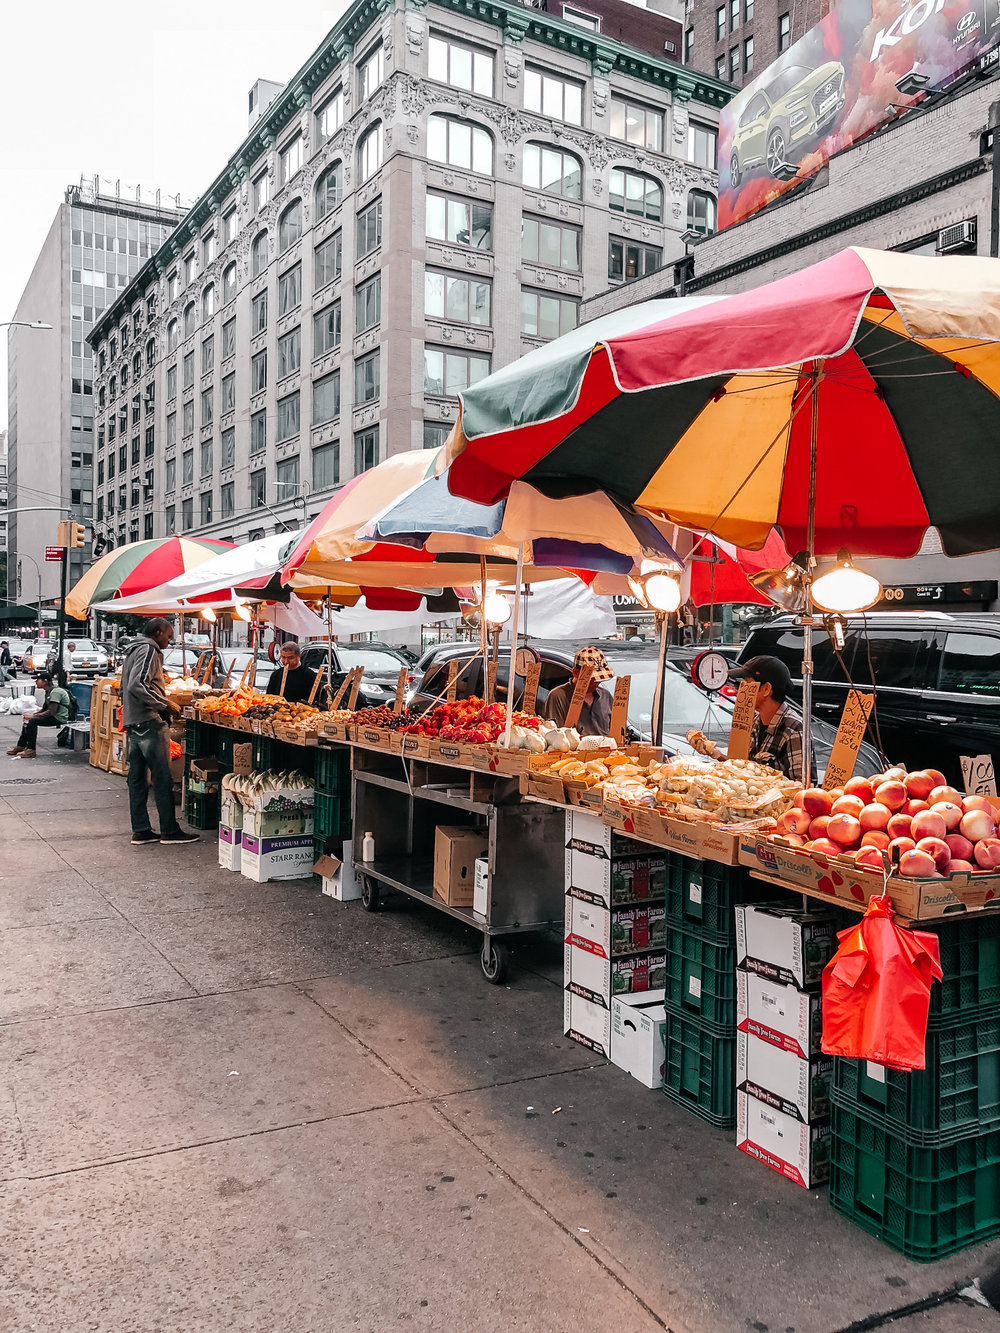 Part of the Chinatown Market